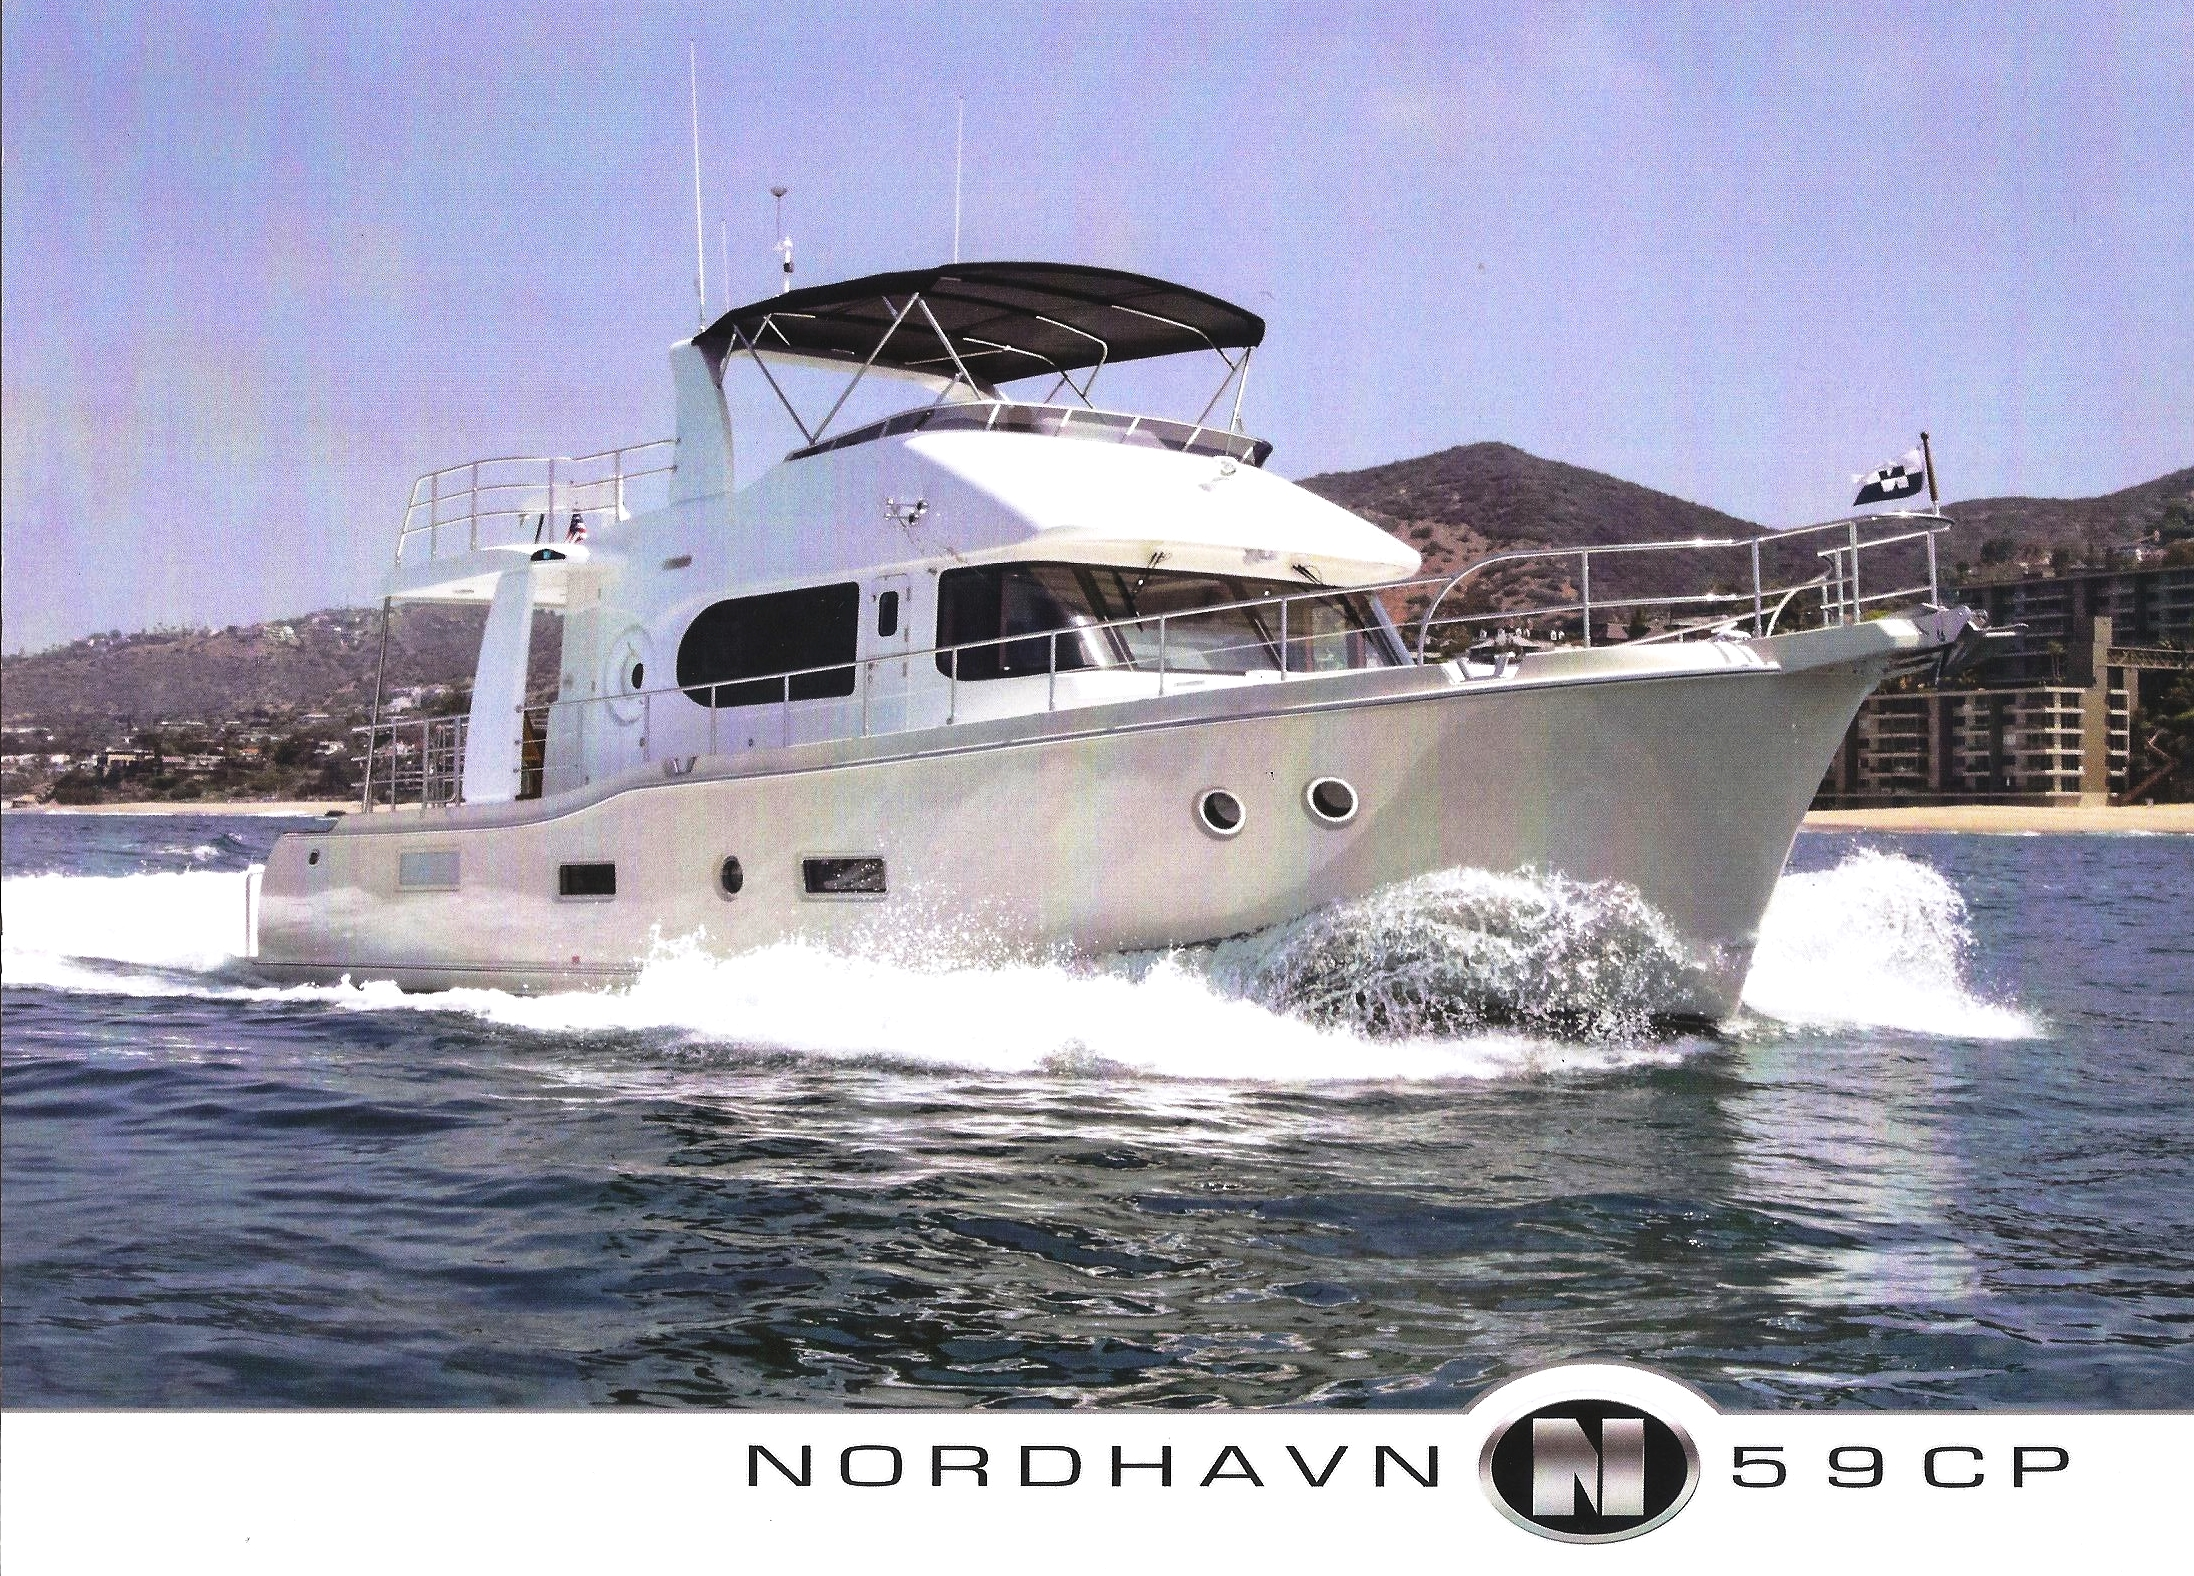 The Nordhavn Sales Brochure Hull No. 1 - our boat